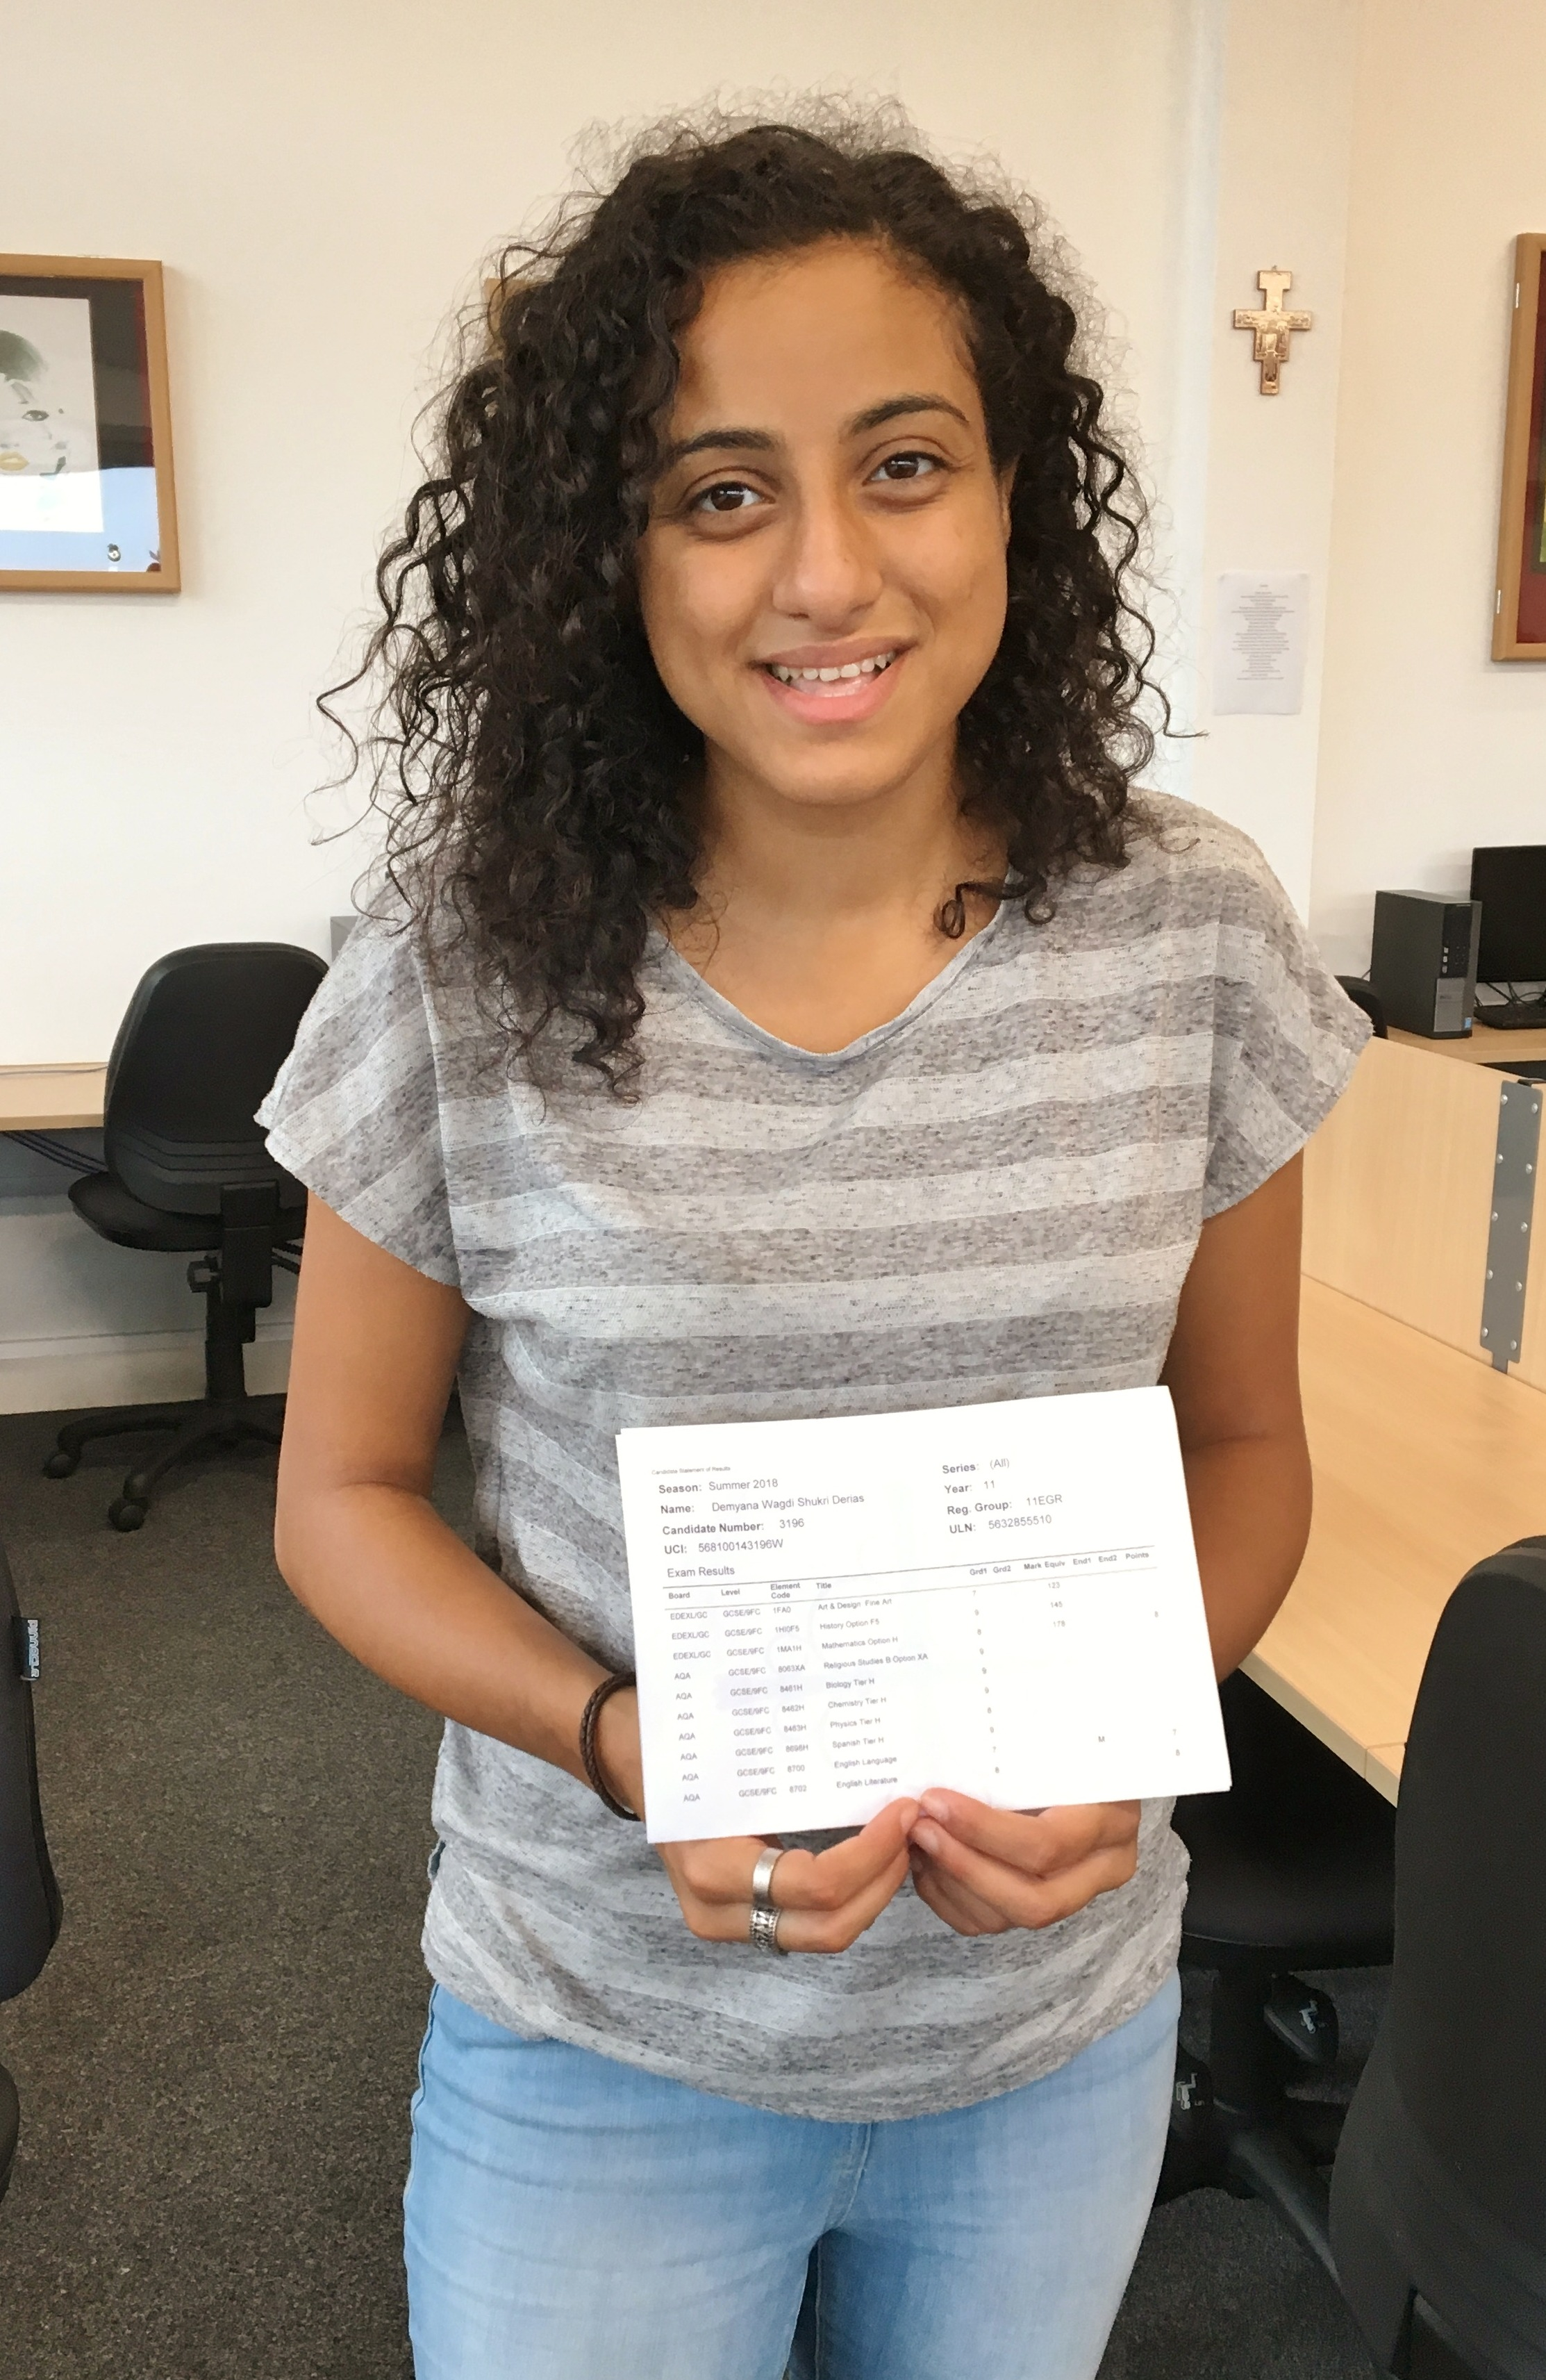 Demy Derias - 10 GCSEs, five at Grade 9, three at Grade 8 and two at Grade 7